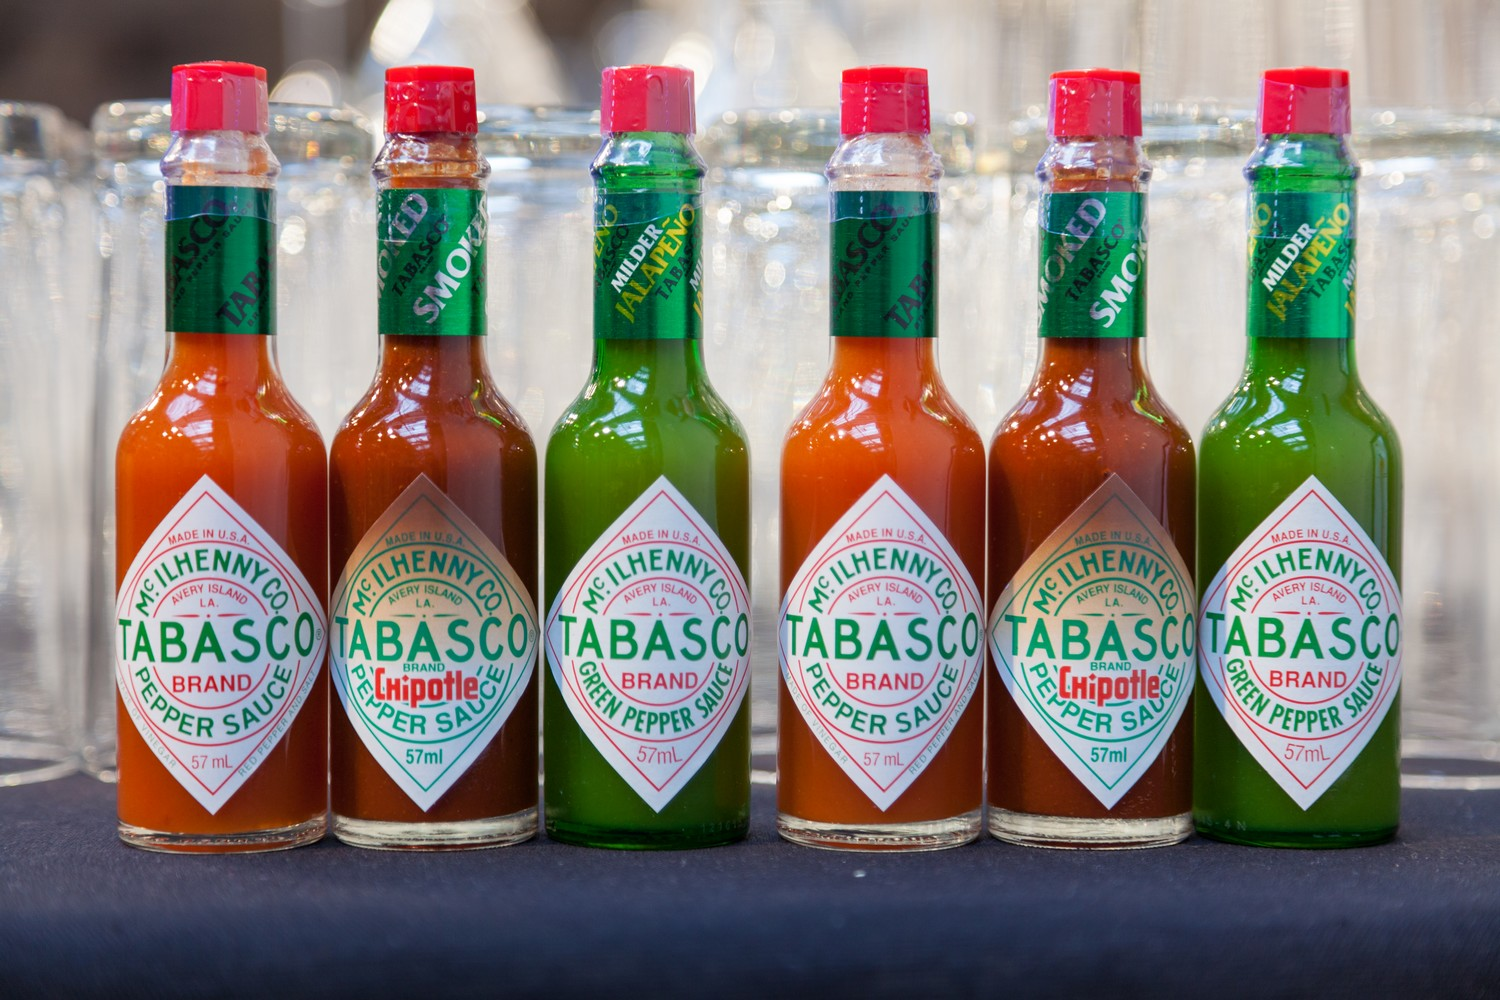 flacons tabasco maeva-destombes